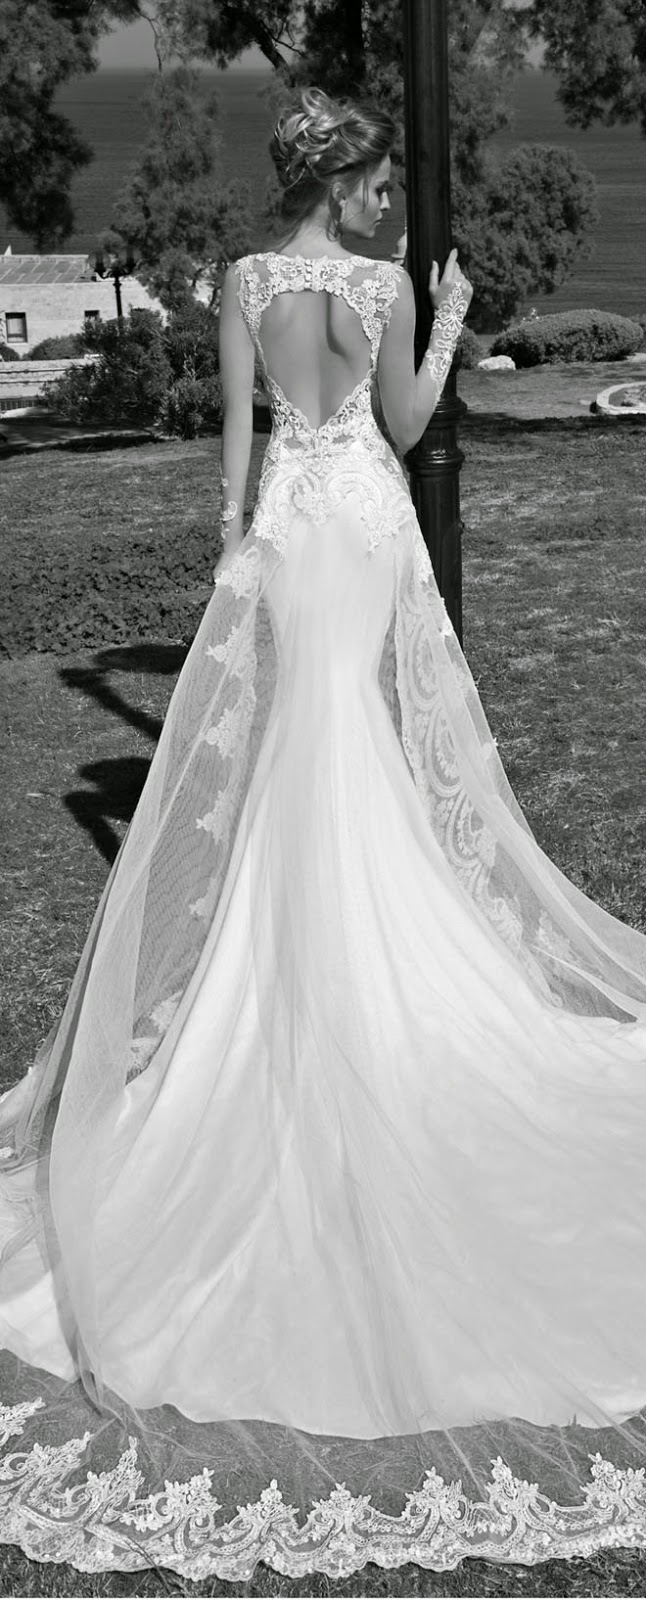 galia-lahav-wedding-dresses-1-06152014nz